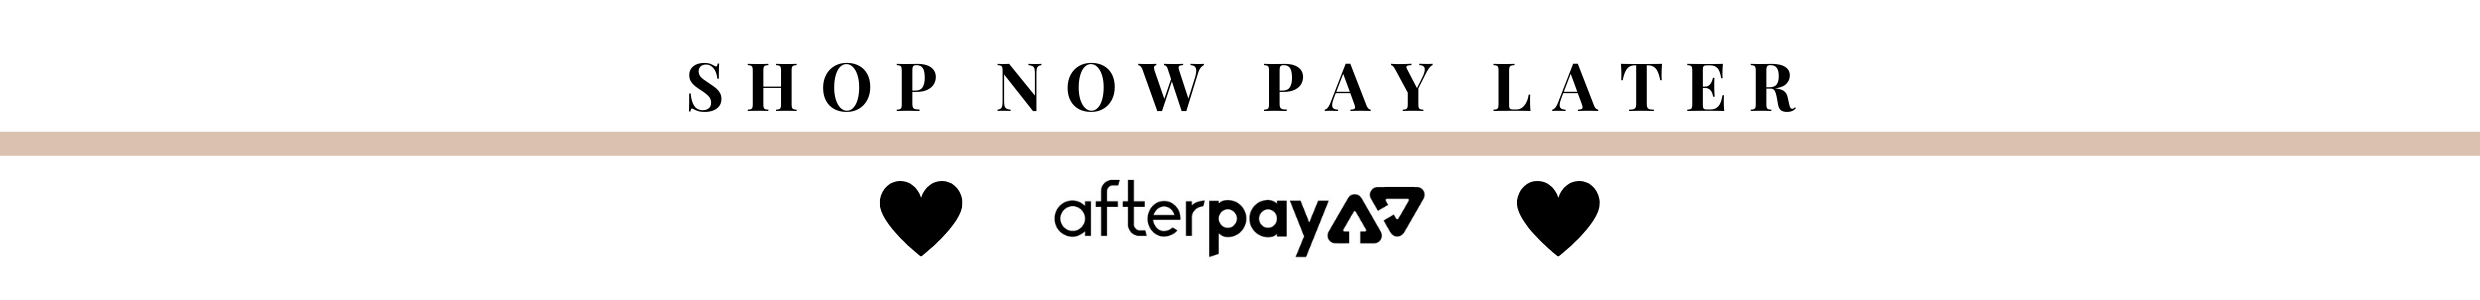 Afterpay Mobile Banner